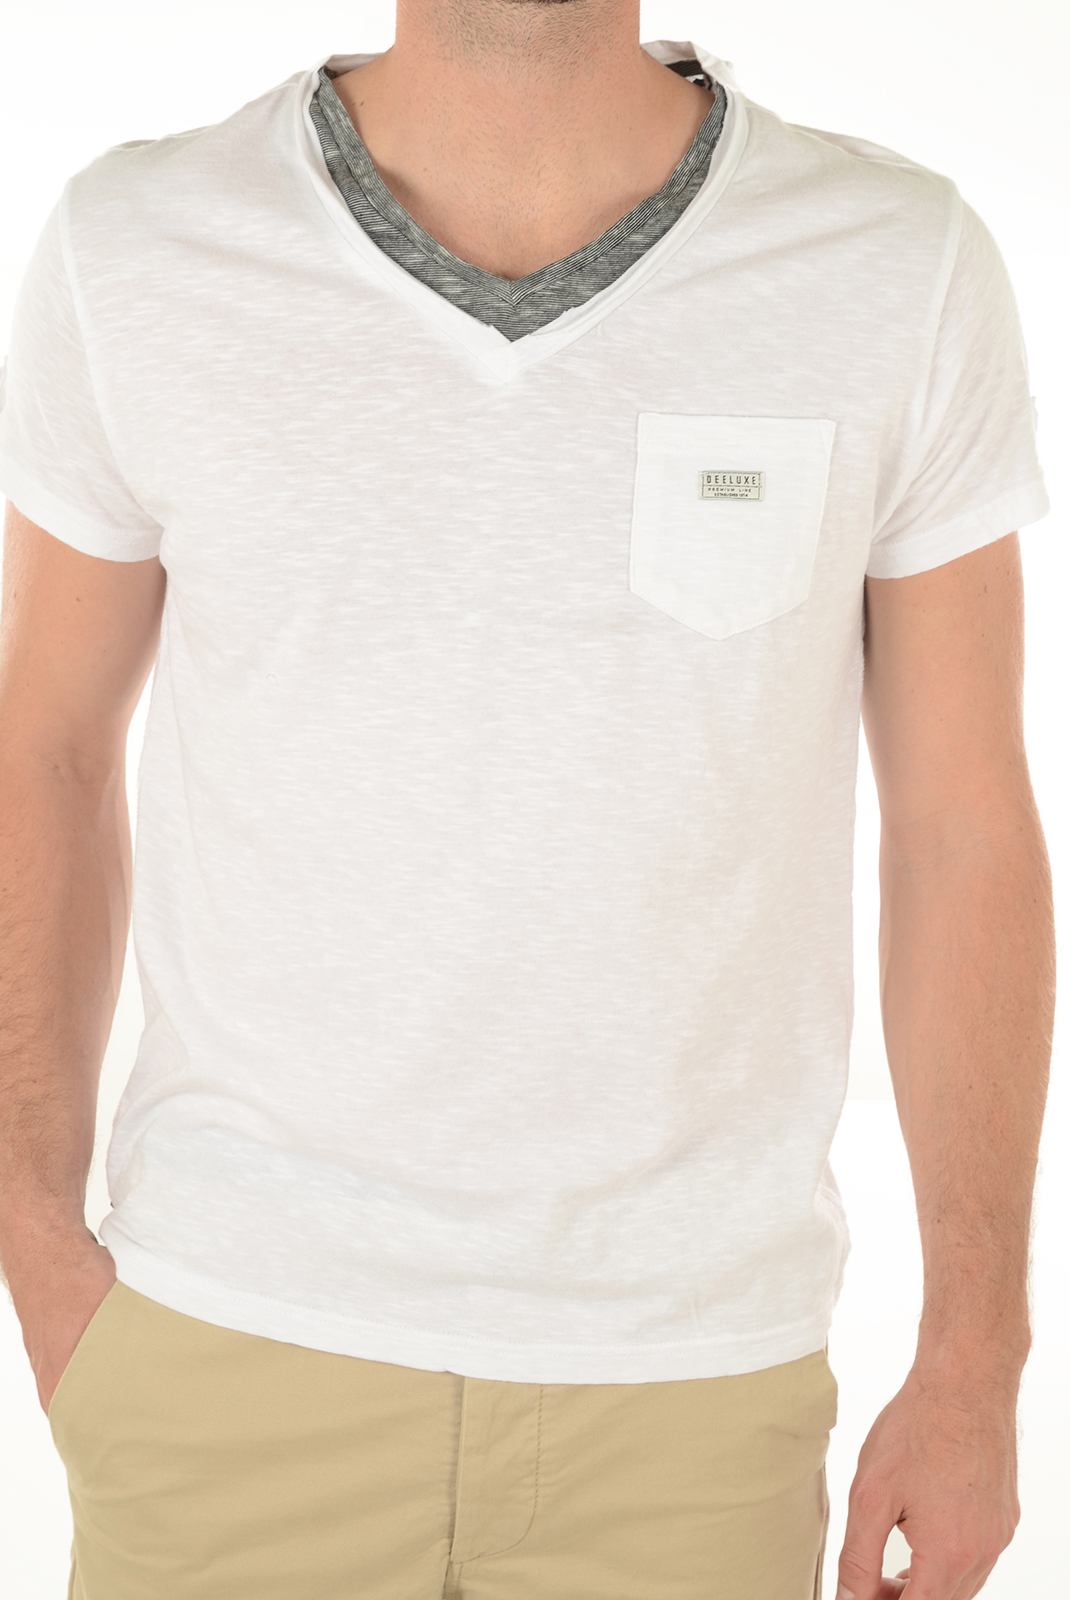 Tee-shirts manches courtes  Deeluxe ARTEMIS BLANC